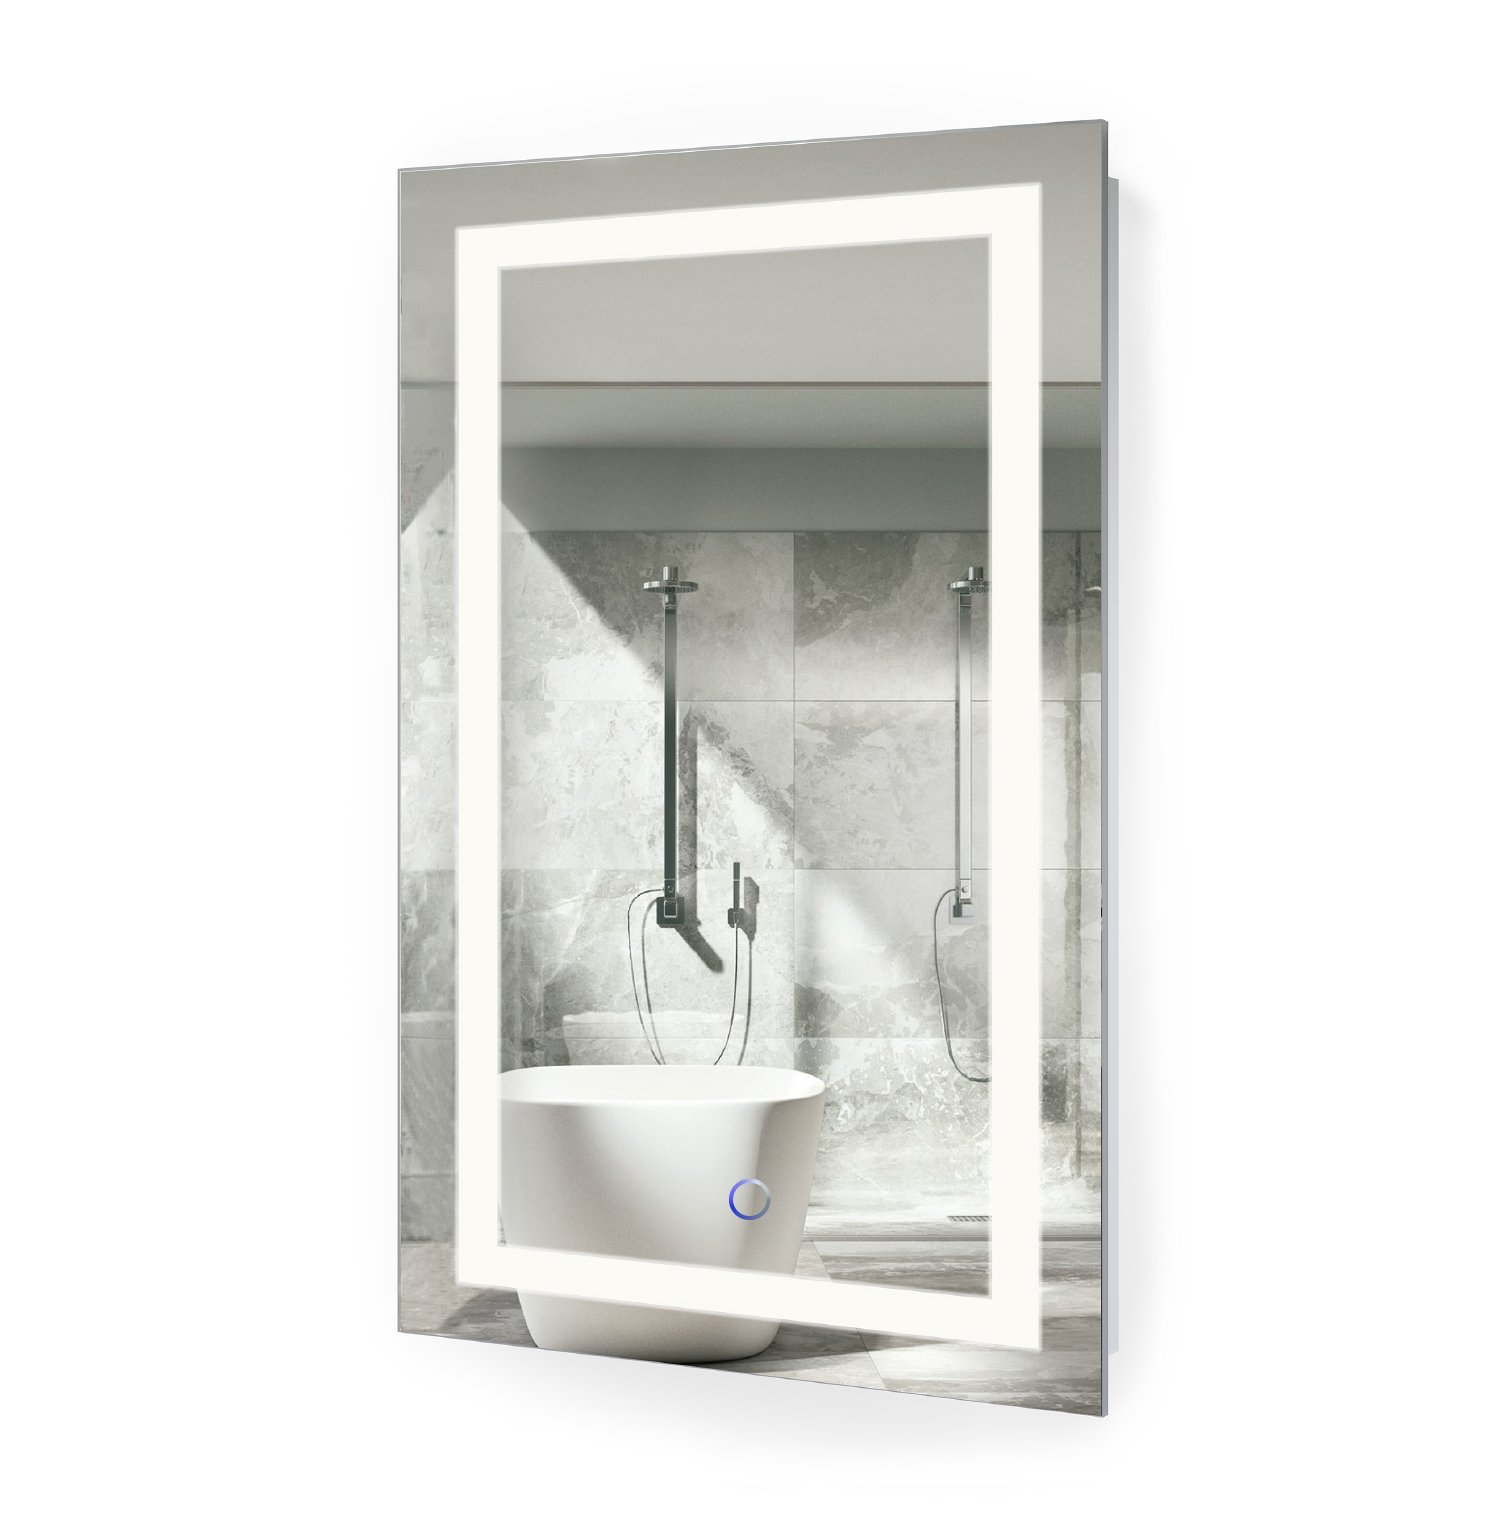 LED Bathroom Mirror 18 Inch X 30 Inch | Lighted Vanity Mirror Includes Dimmer and Defogger | Wall Mount Vertical or Horizontal Installation |